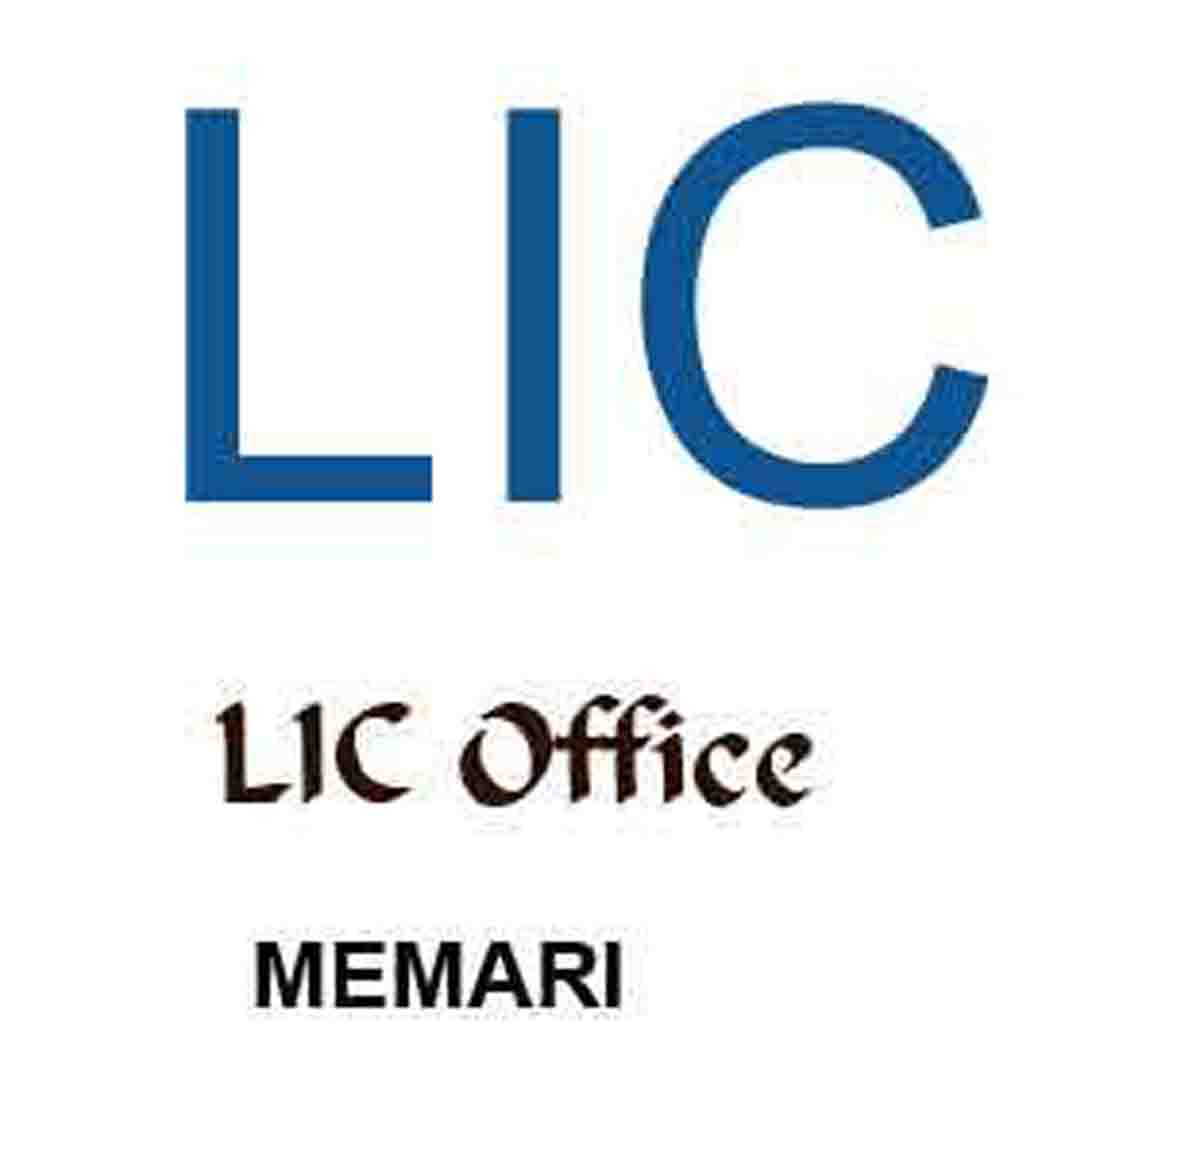 lic office memari